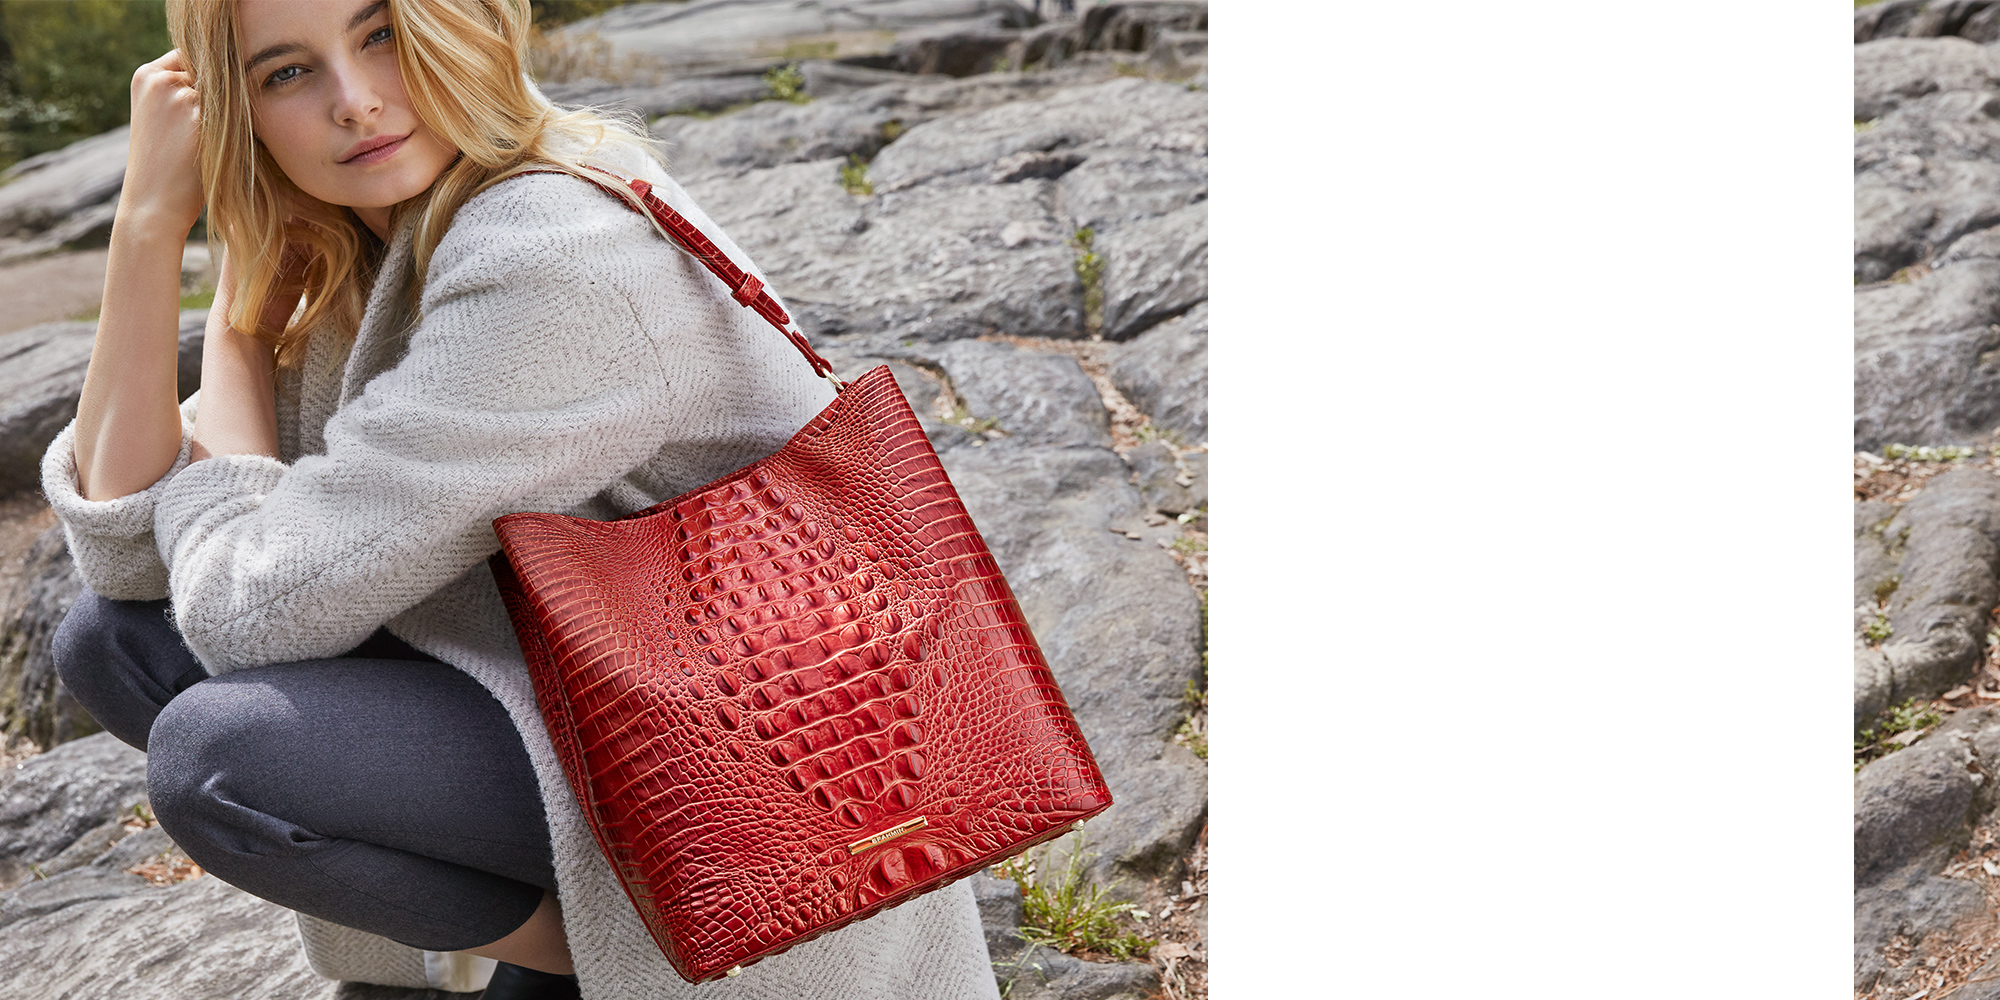 Brahmin | Designer Leather Handbags, Wallets, & Accessories